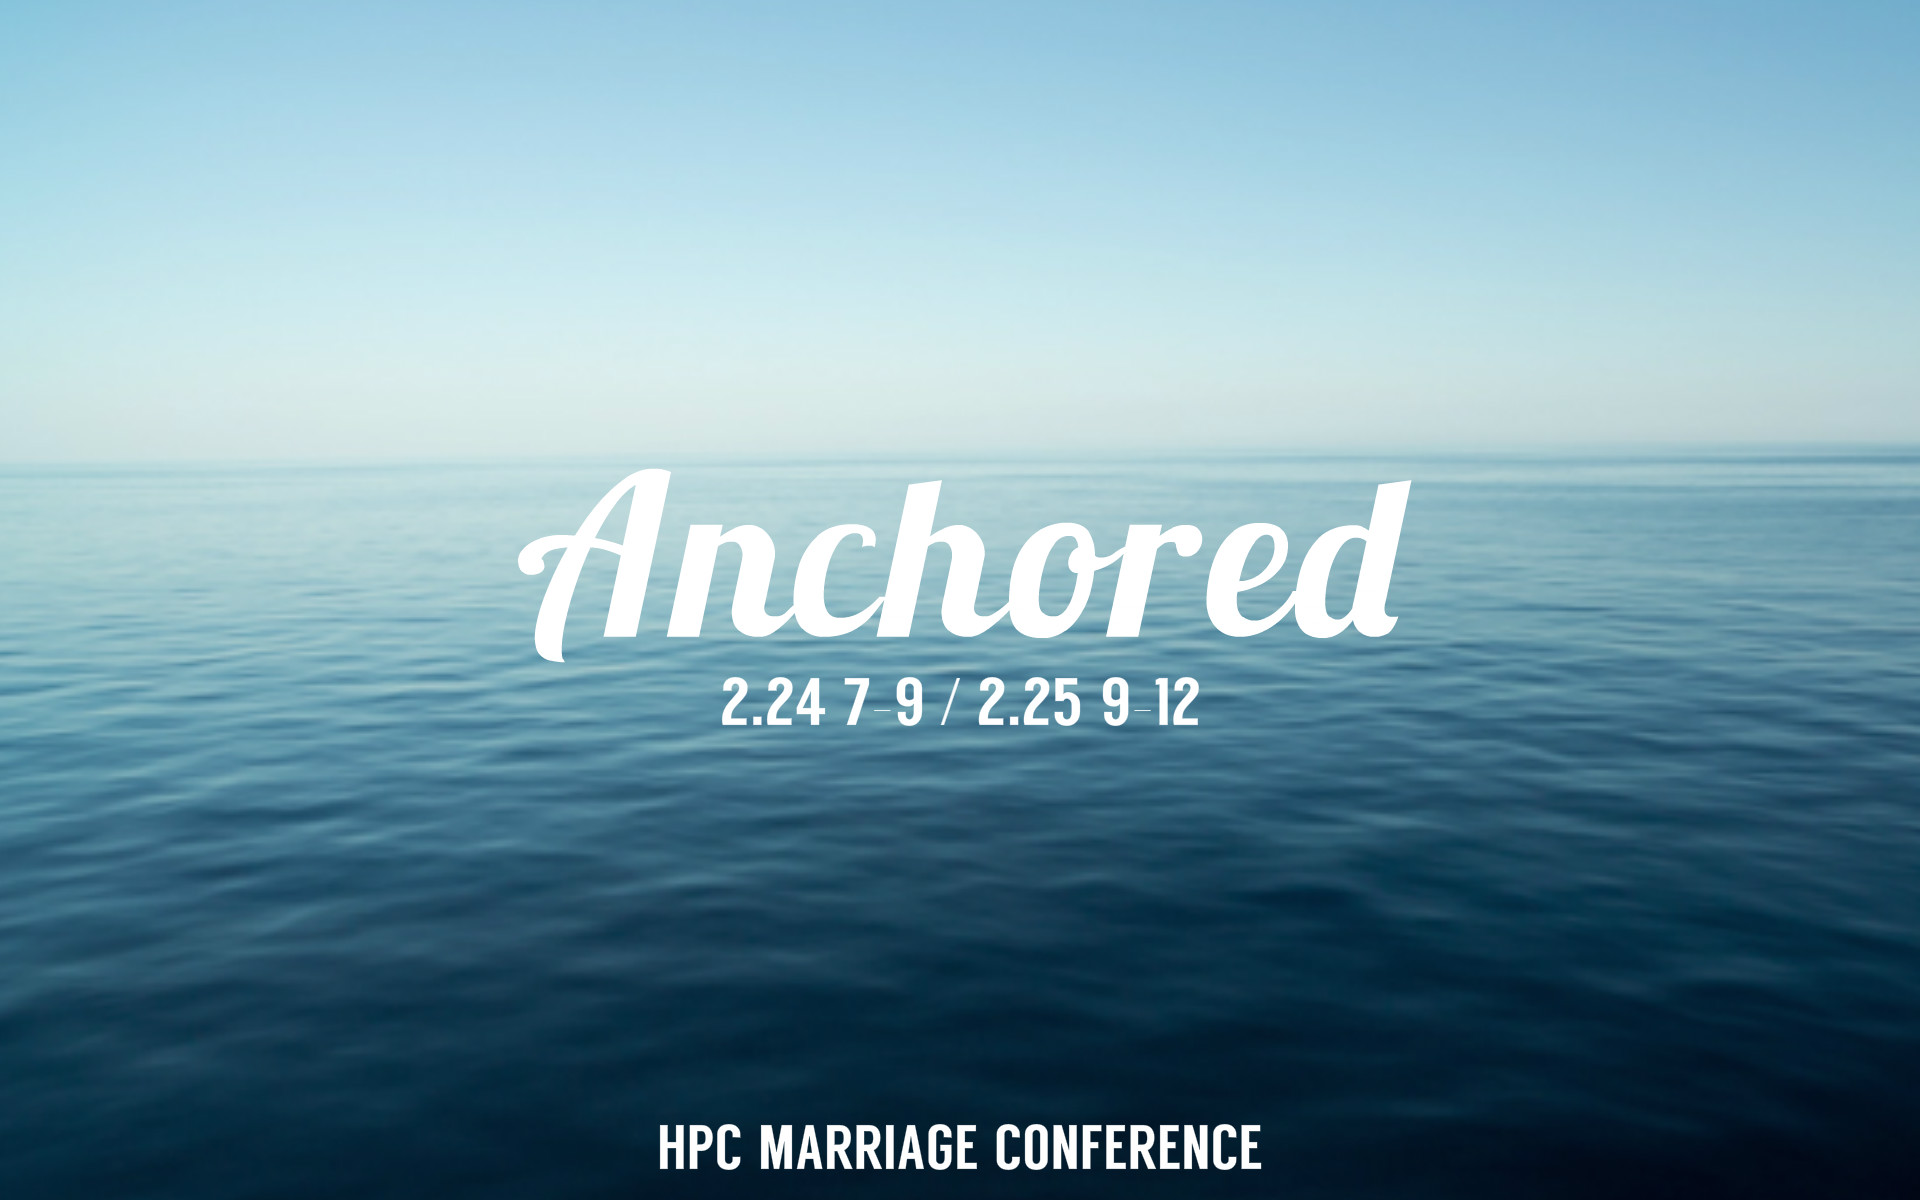 Anchored - HPC Marriage Conference logo